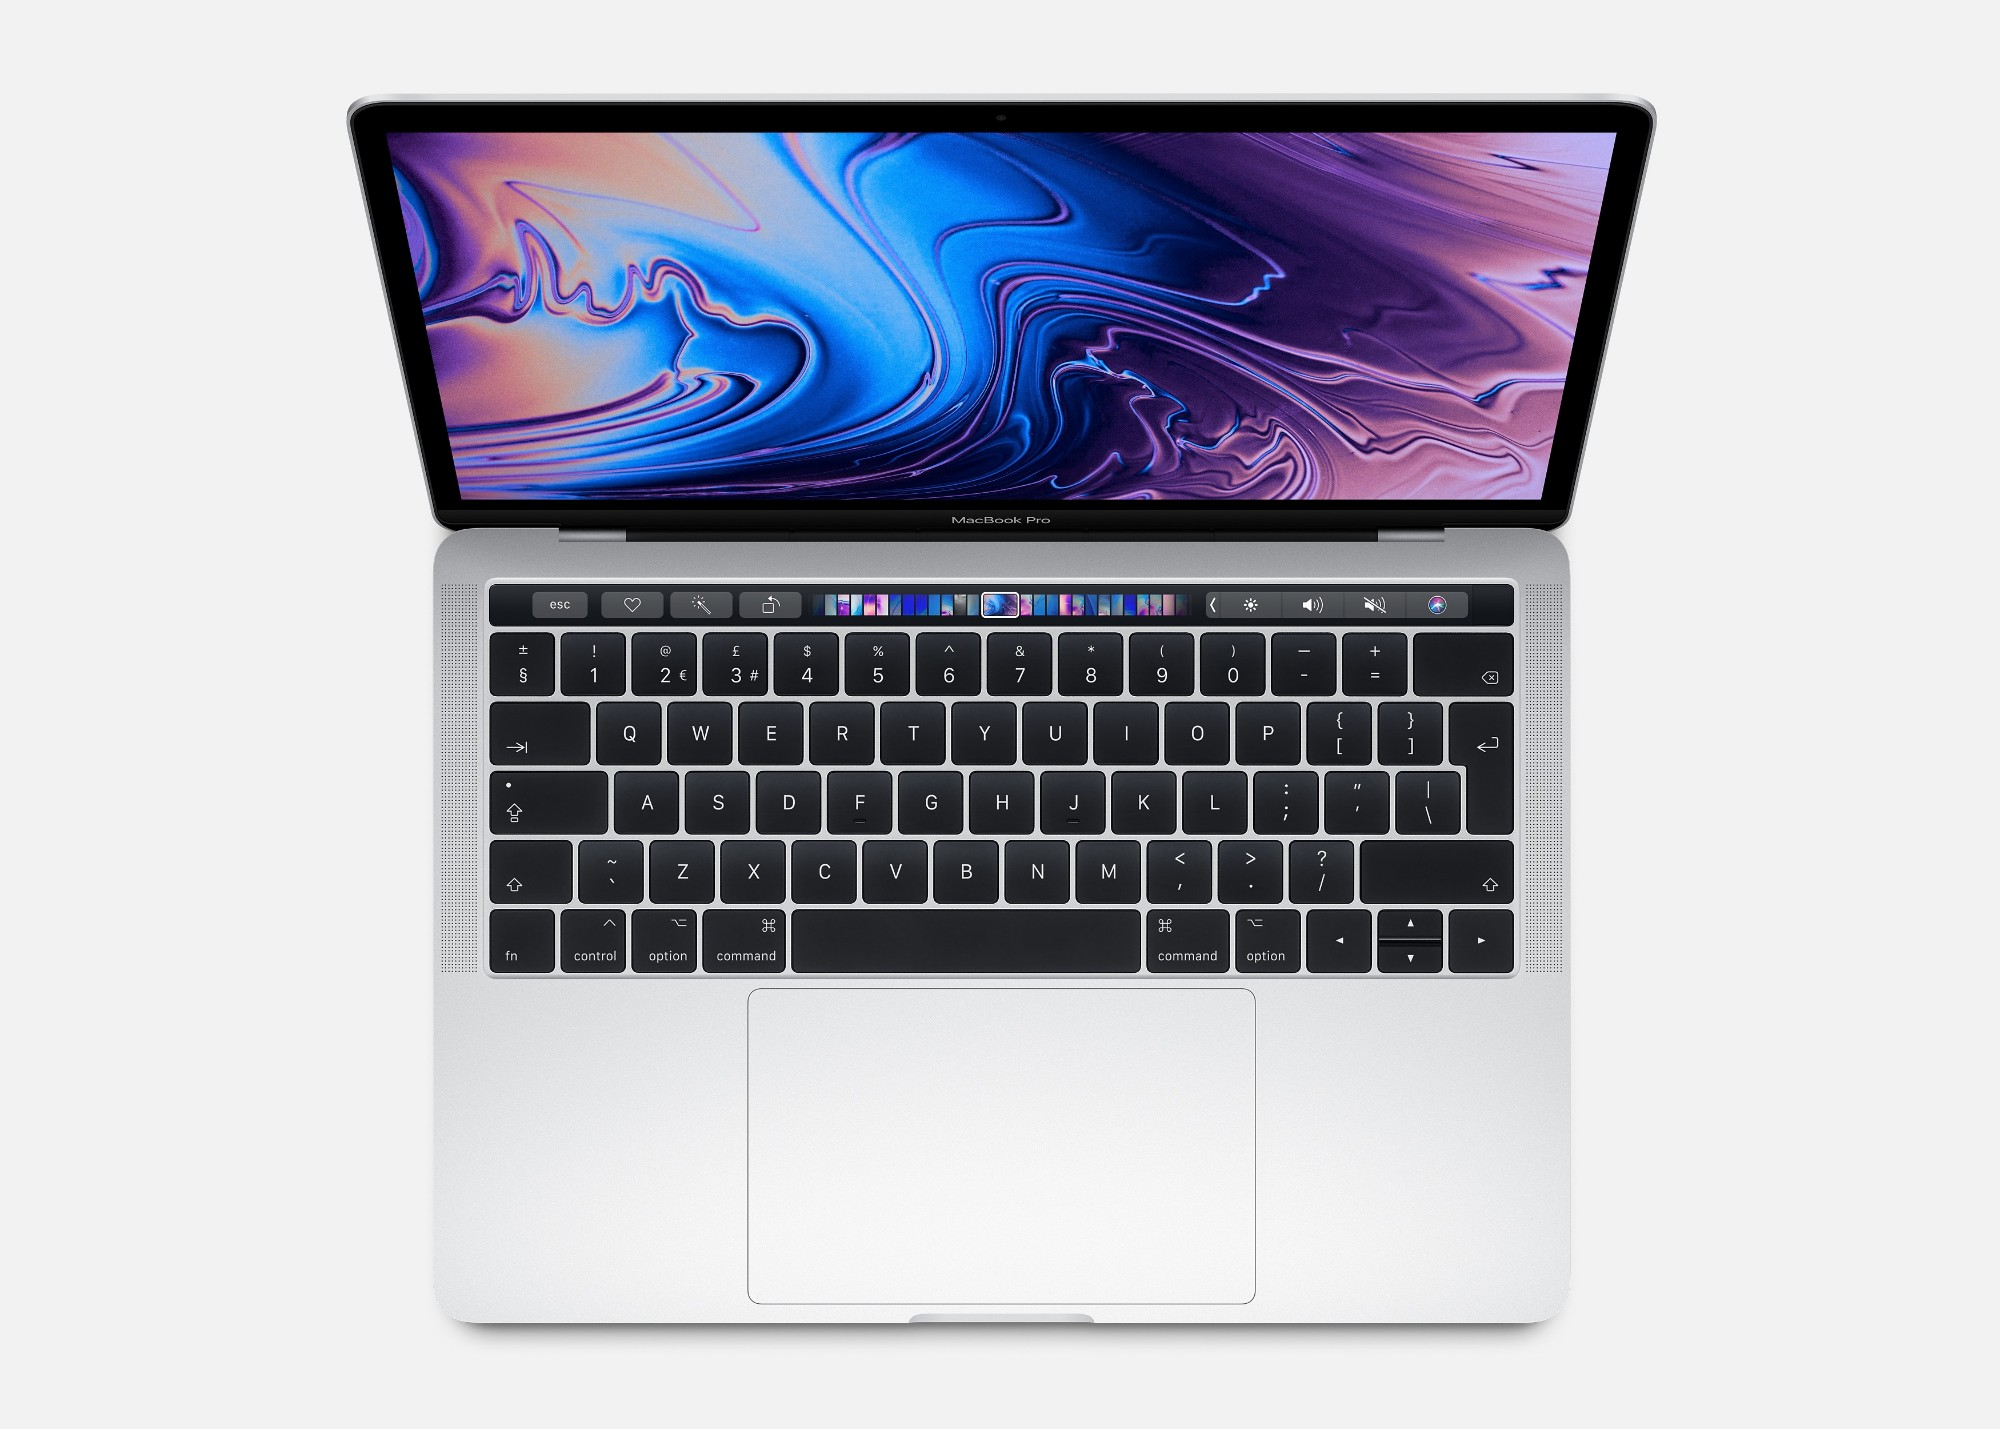 MacBook Pro Qci5 8gen 2.4gh TB 256GB 8GB 13in Ios Silver        In